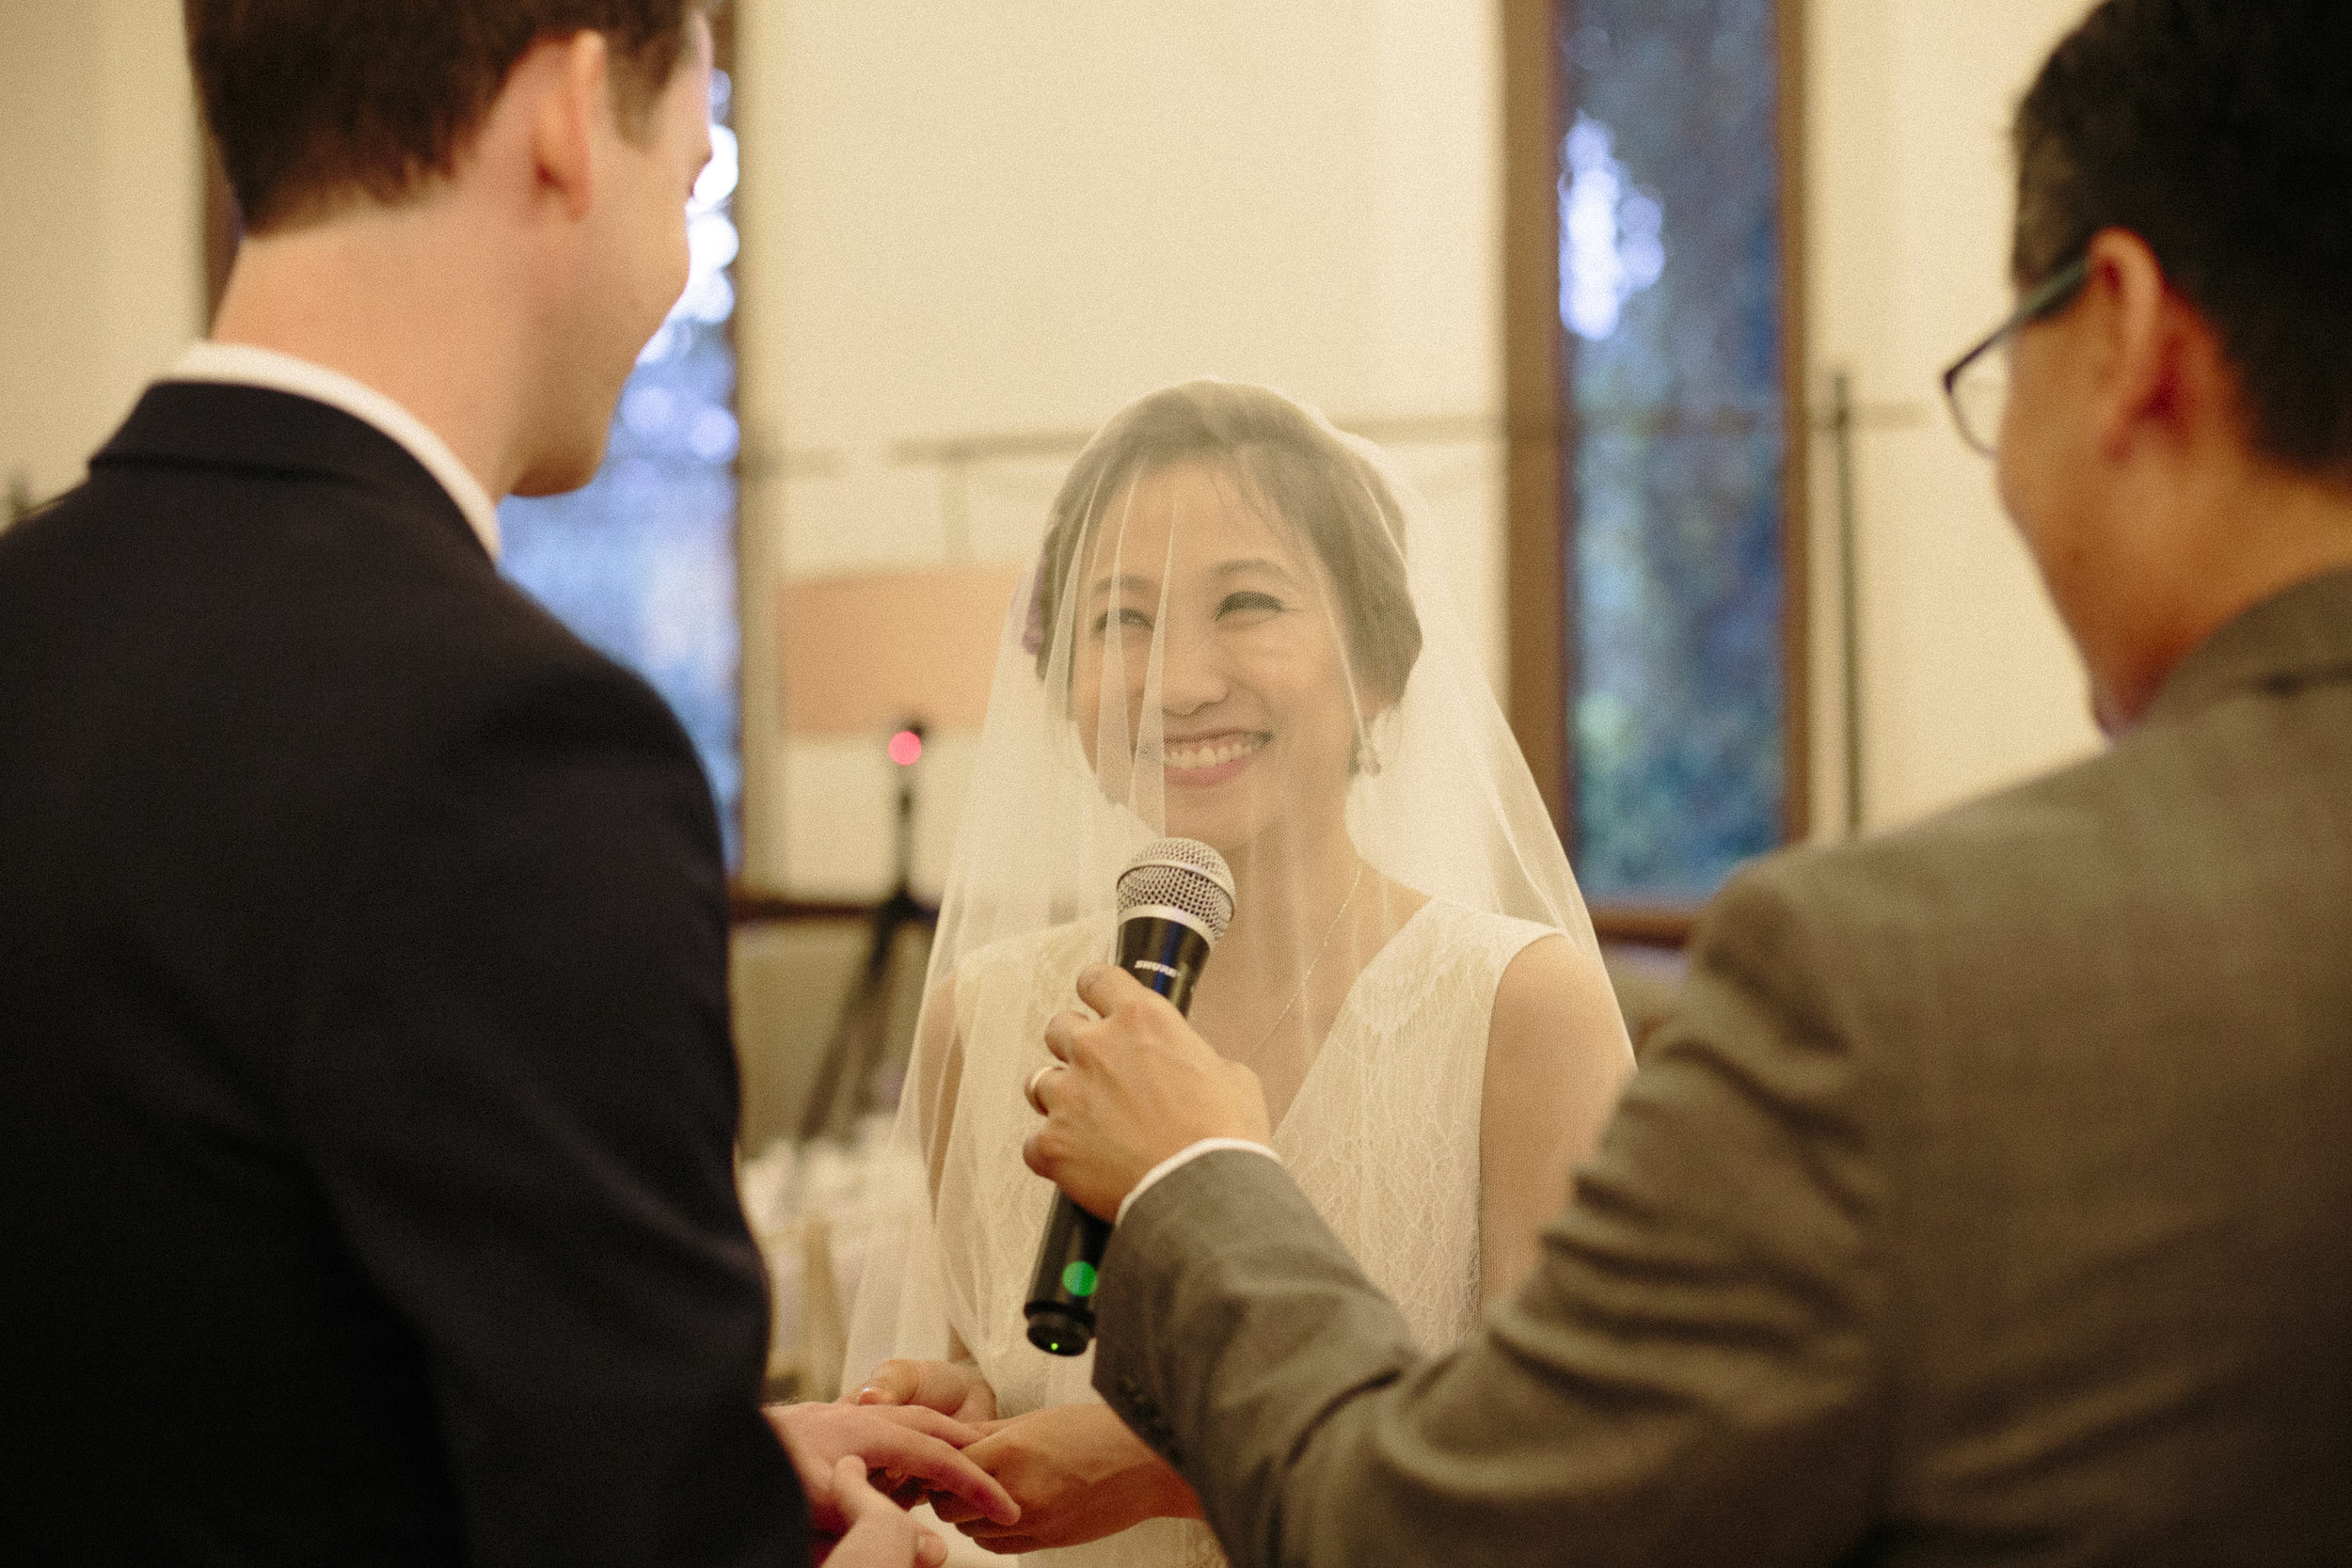 singapore-wedding-photographer-hiram-joyce-041.jpg